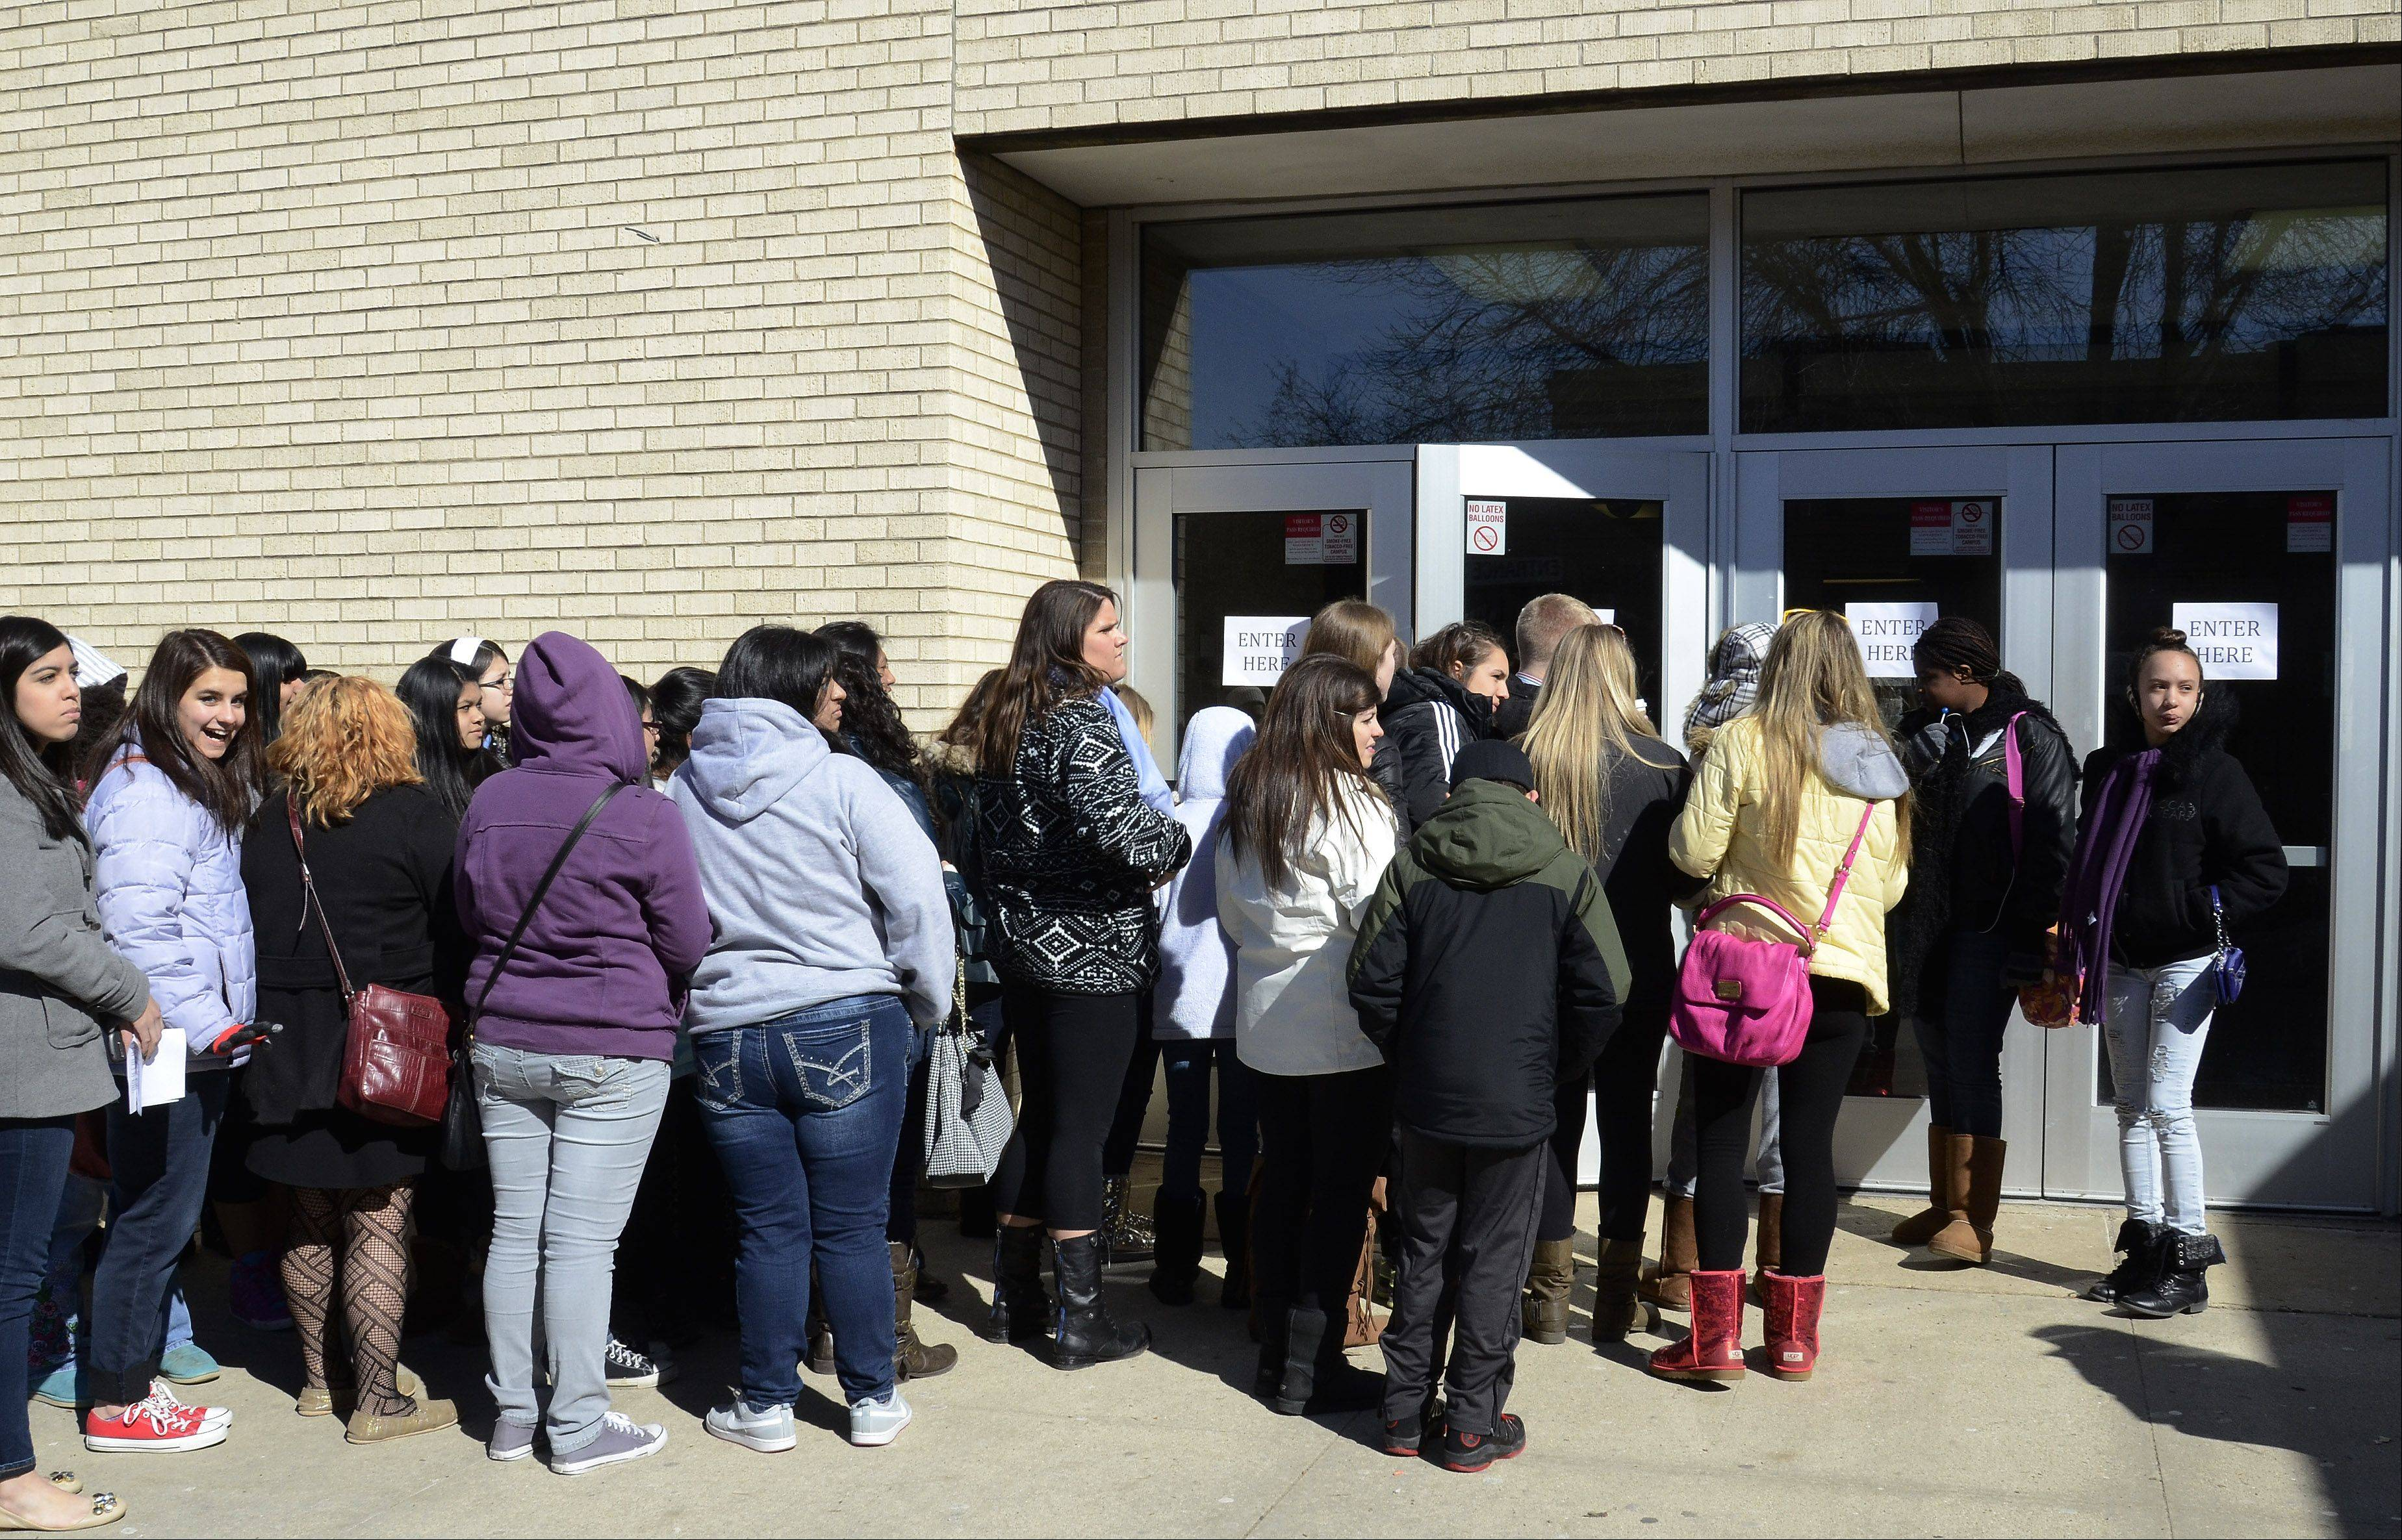 Barrington High School students lined up to see pop star Rihanna make her long-awaited visit to the school.